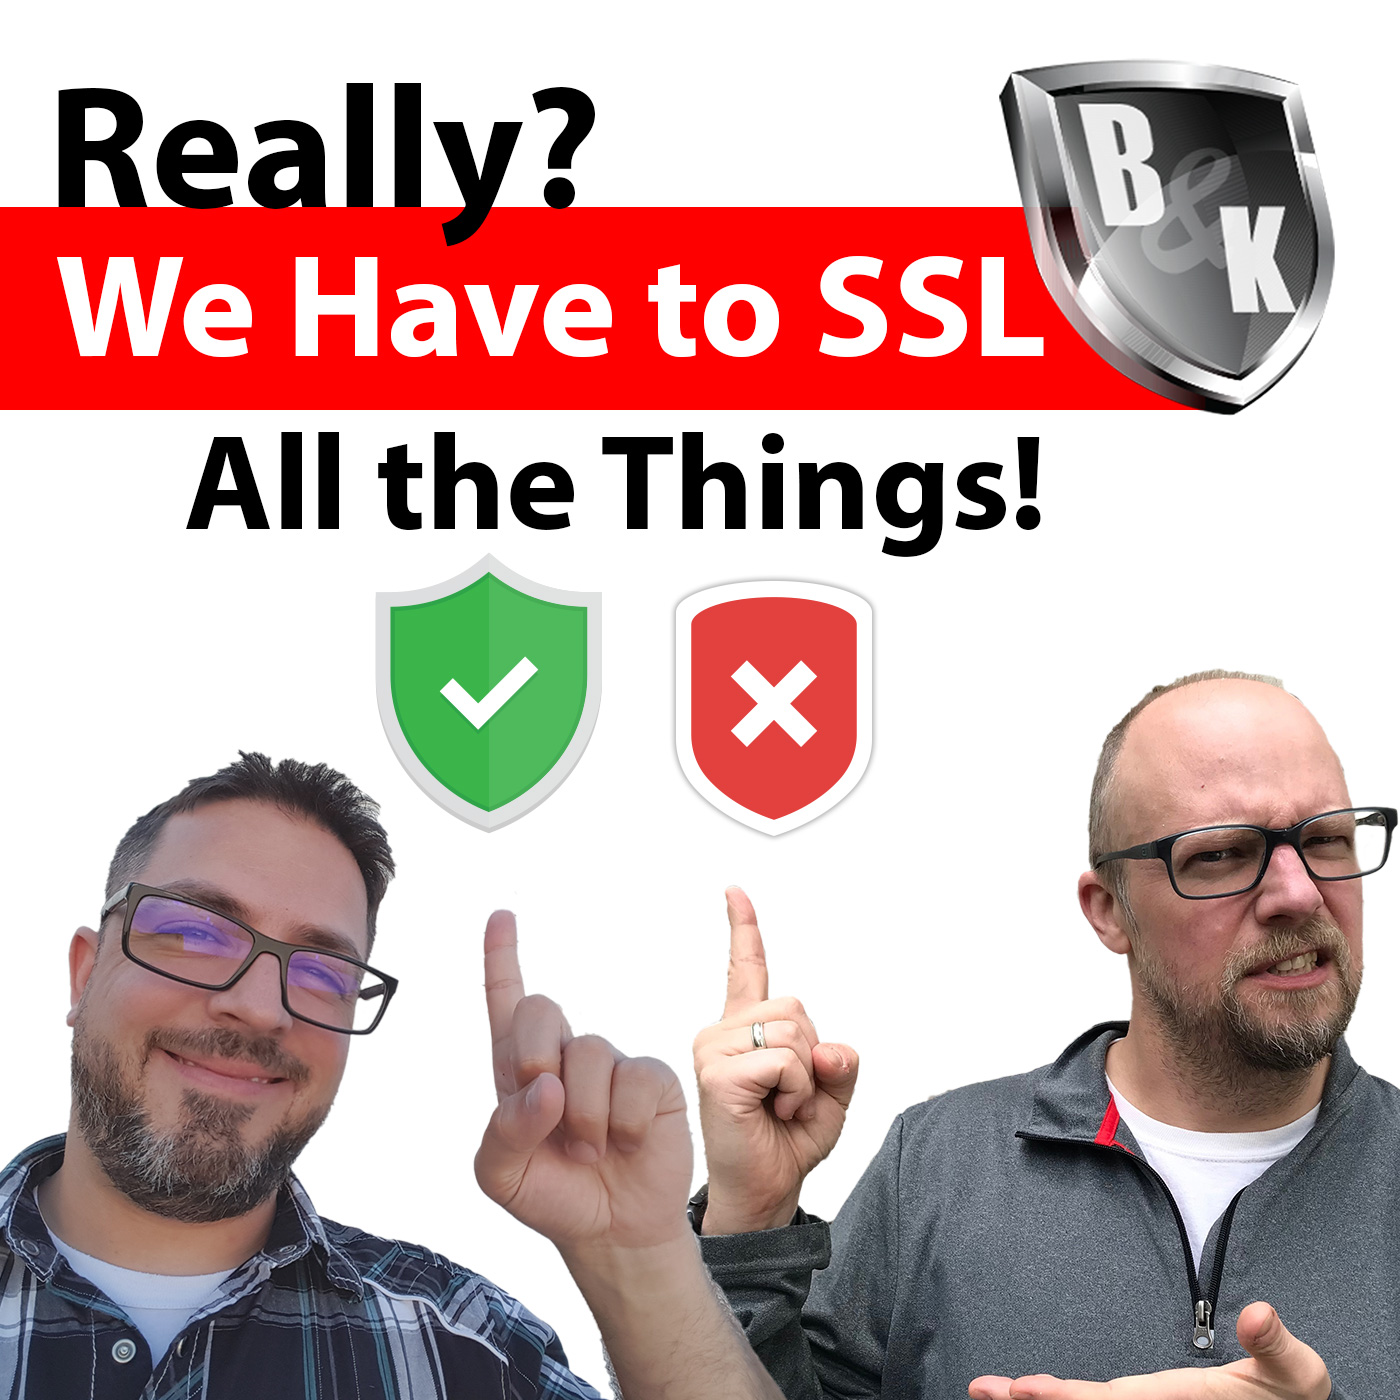 Ep. 005 - So, do we really have to SSL all the things? It turns out that…